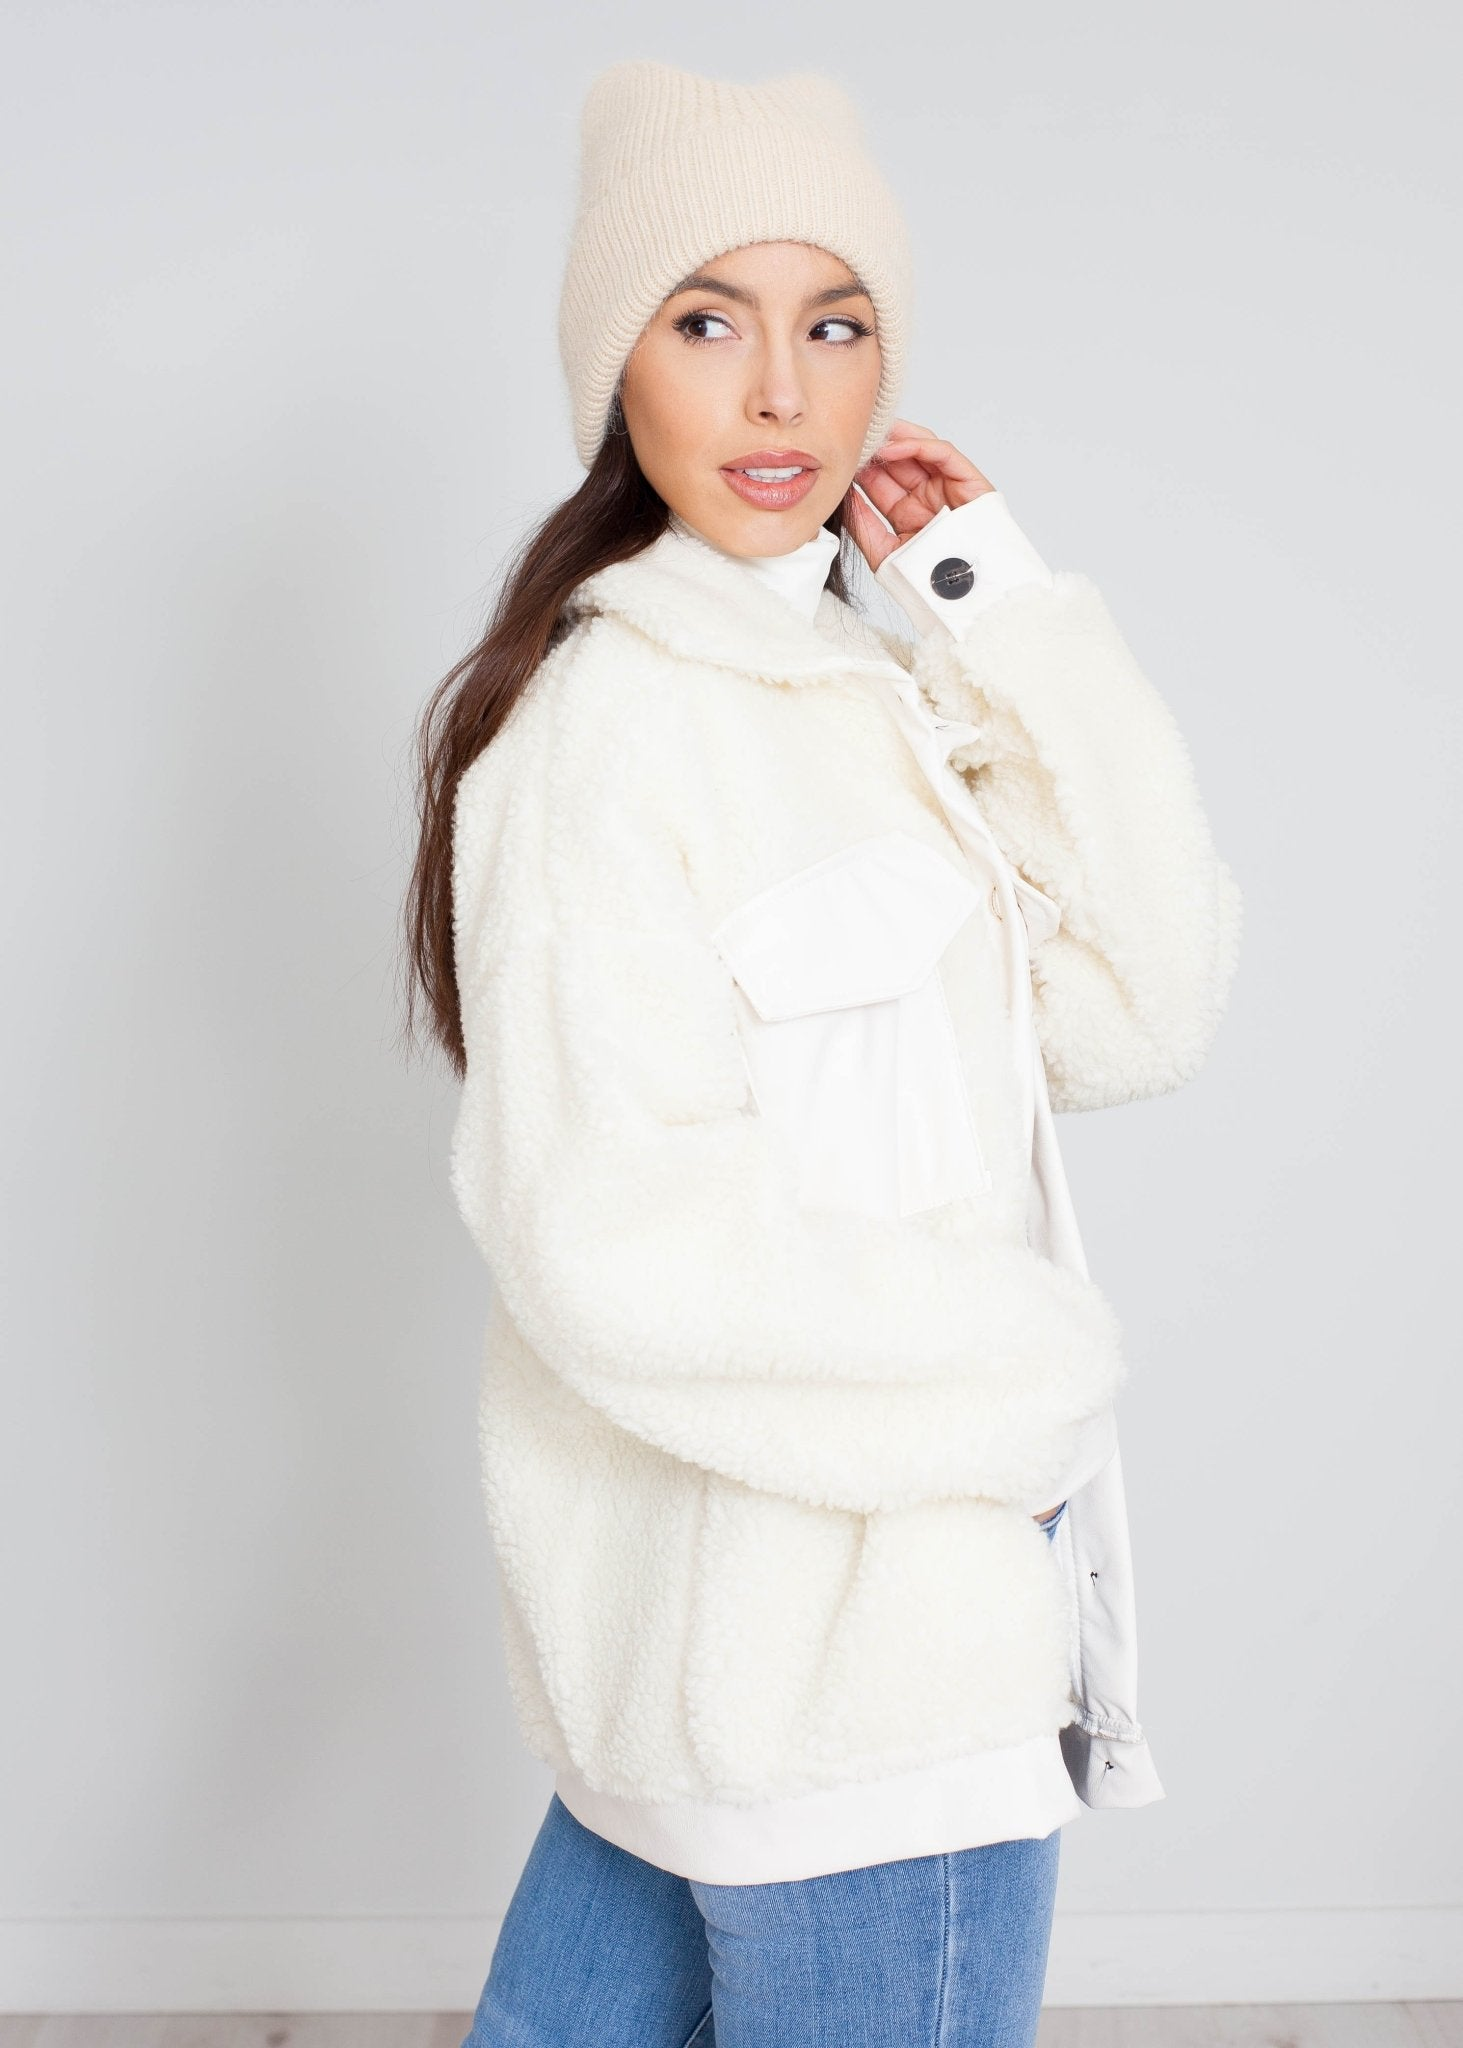 Priya Teddy Shacket In Cream - The Walk in Wardrobe